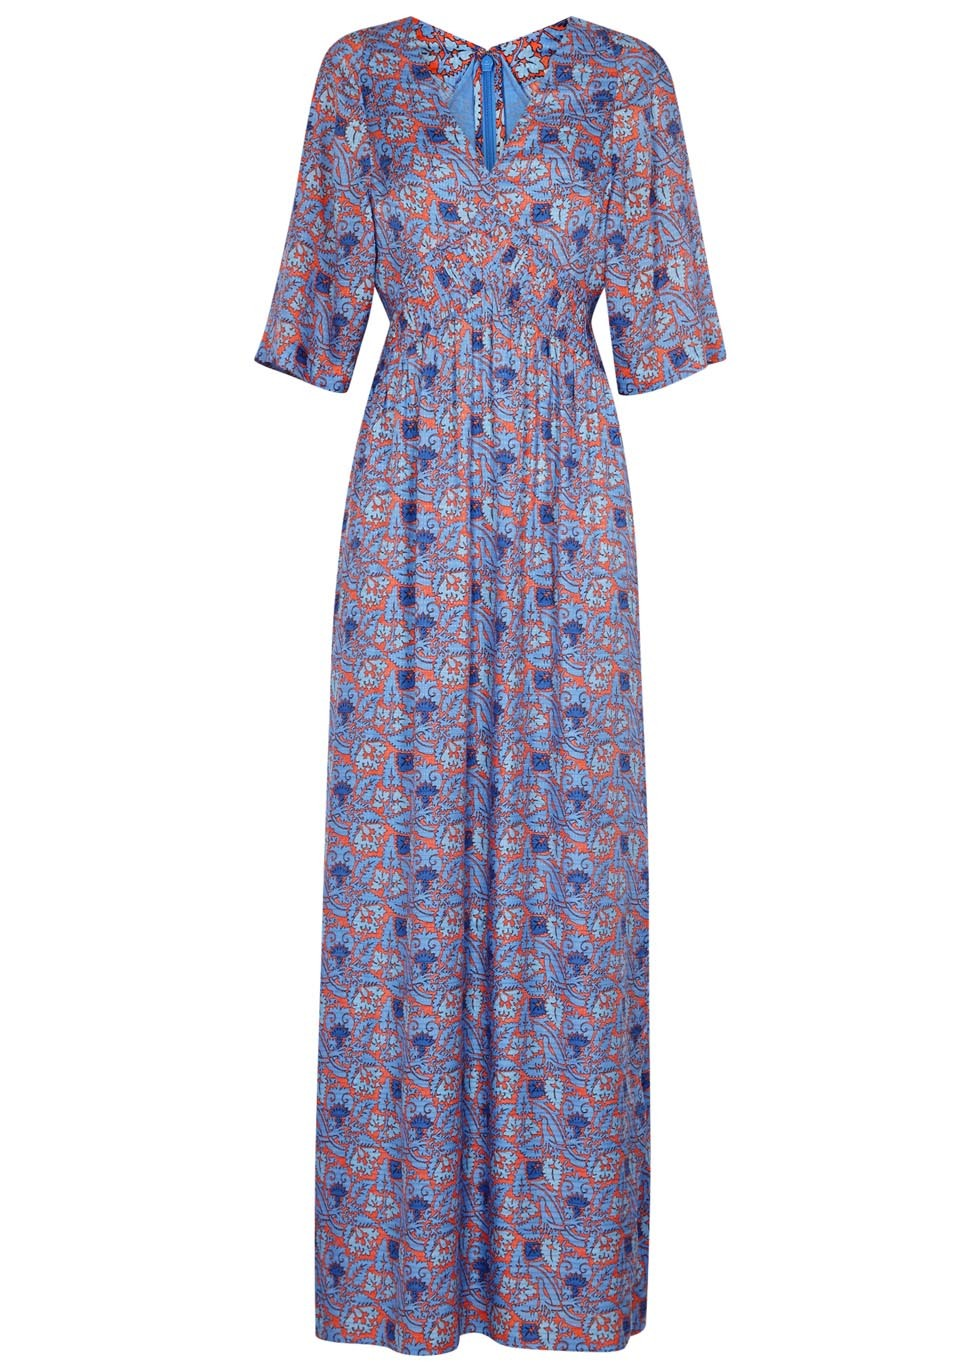 Corrine Printed Silk Blend Maxi Dress - neckline: v-neck; style: maxi dress; secondary colour: pink; predominant colour: pale blue; occasions: evening; length: floor length; fit: body skimming; fibres: silk - 100%; sleeve length: half sleeve; sleeve style: standard; pattern type: fabric; pattern: patterned/print; texture group: other - light to midweight; multicoloured: multicoloured; season: s/s 2016; wardrobe: event